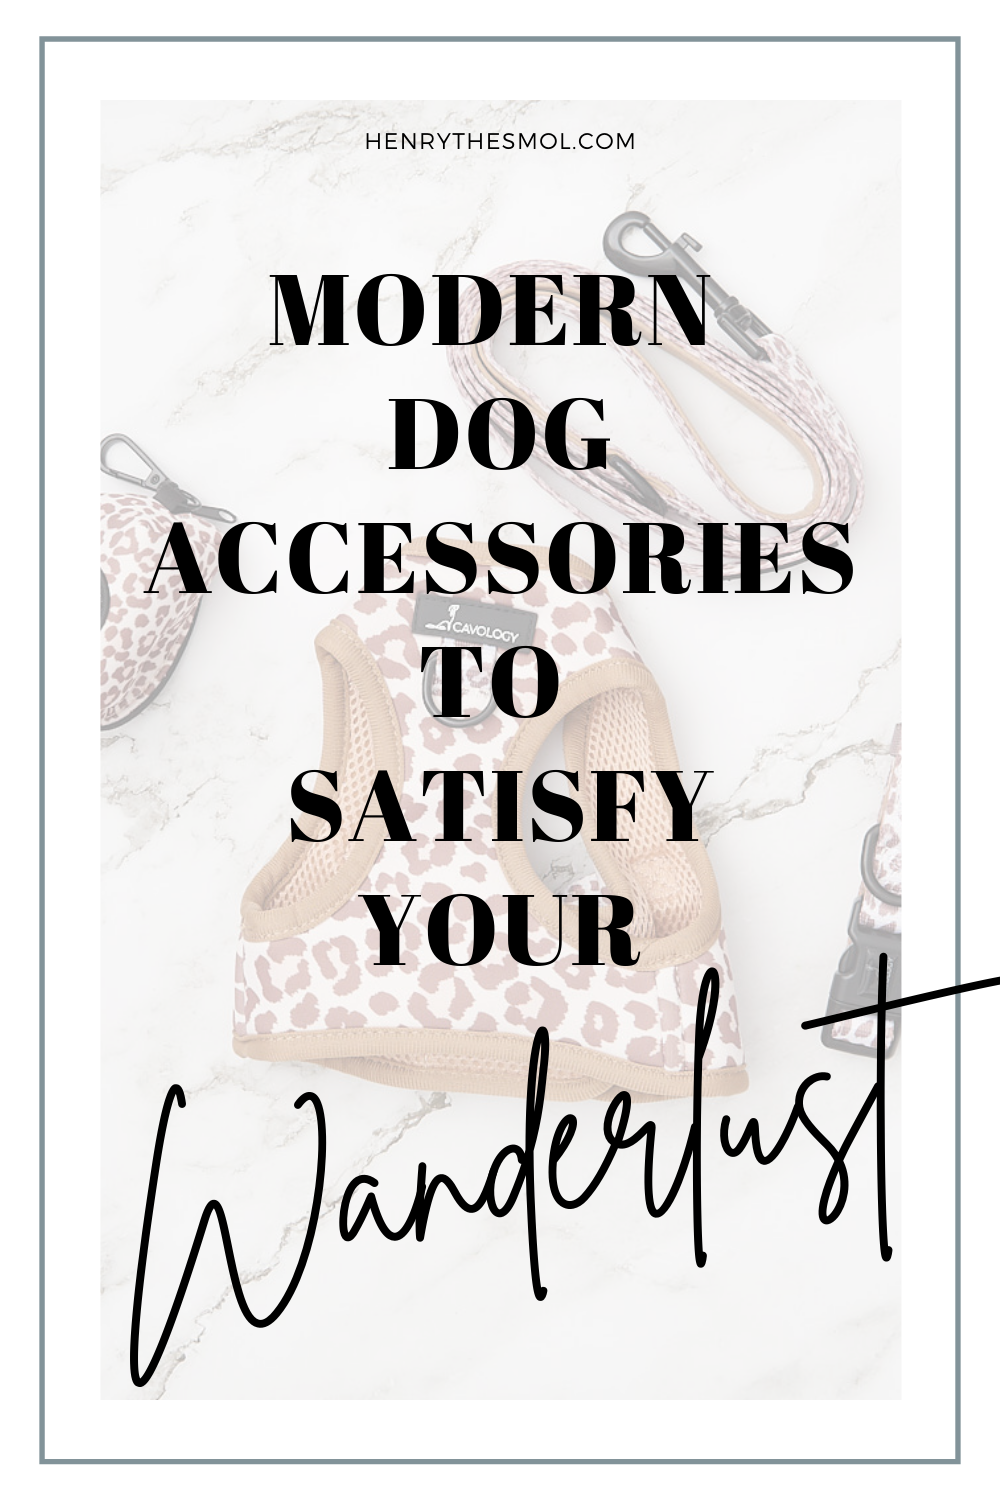 Travel-Inspired Dog Accessories To Satisfy Your Wanderlust